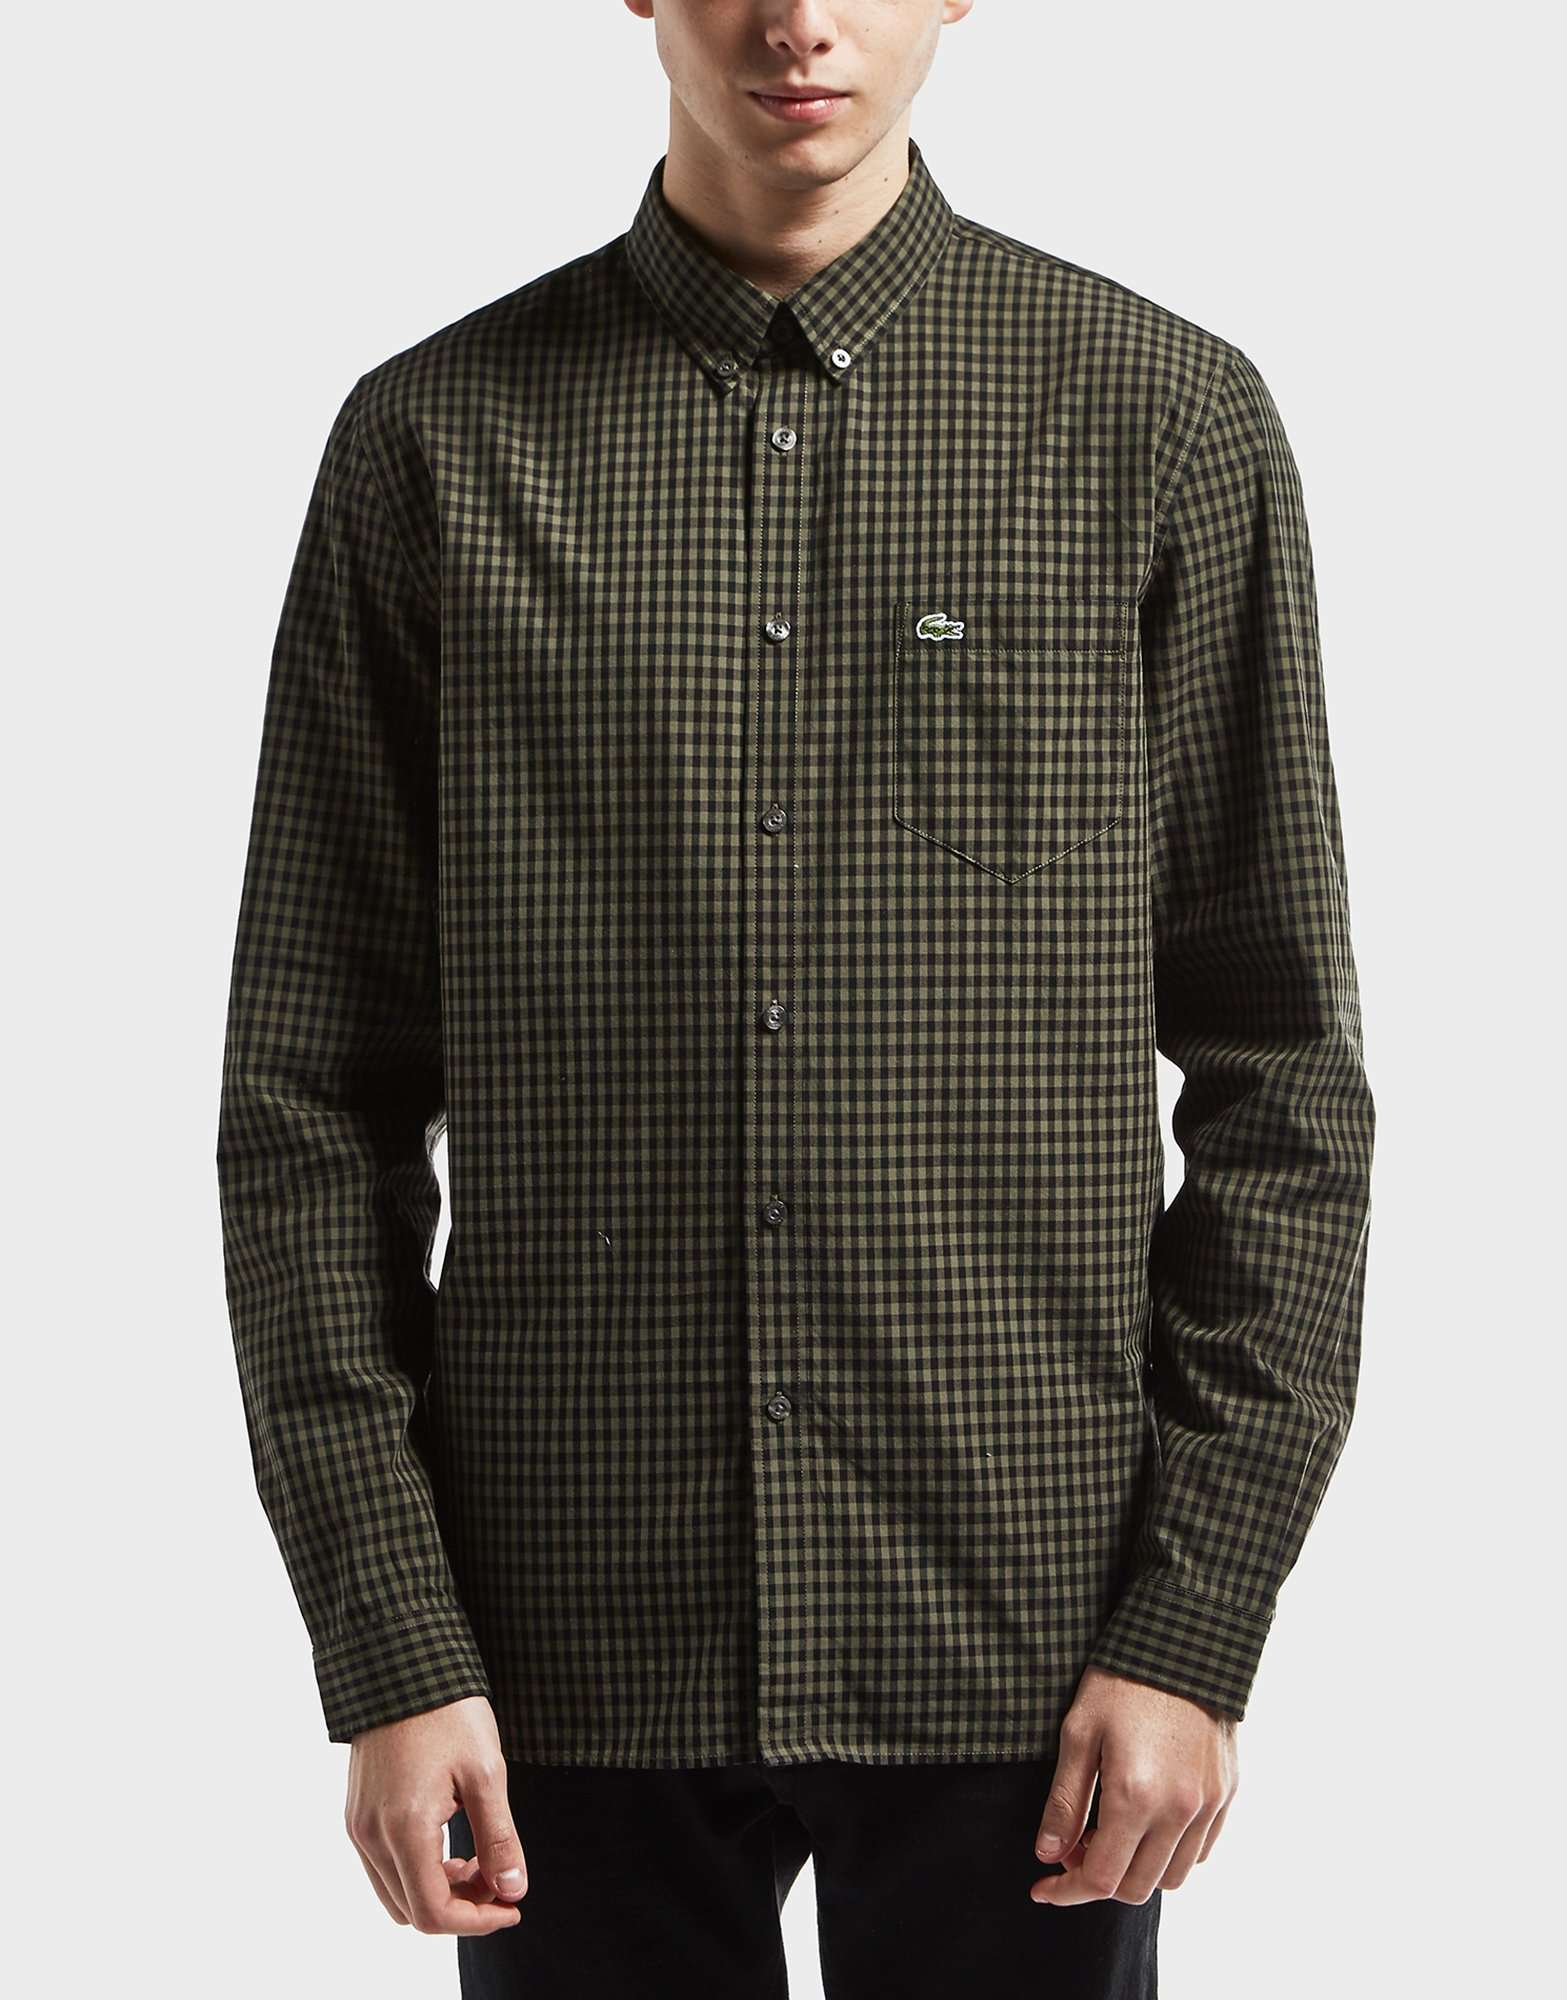 Lacoste Gingham Long Sleeve Shirt